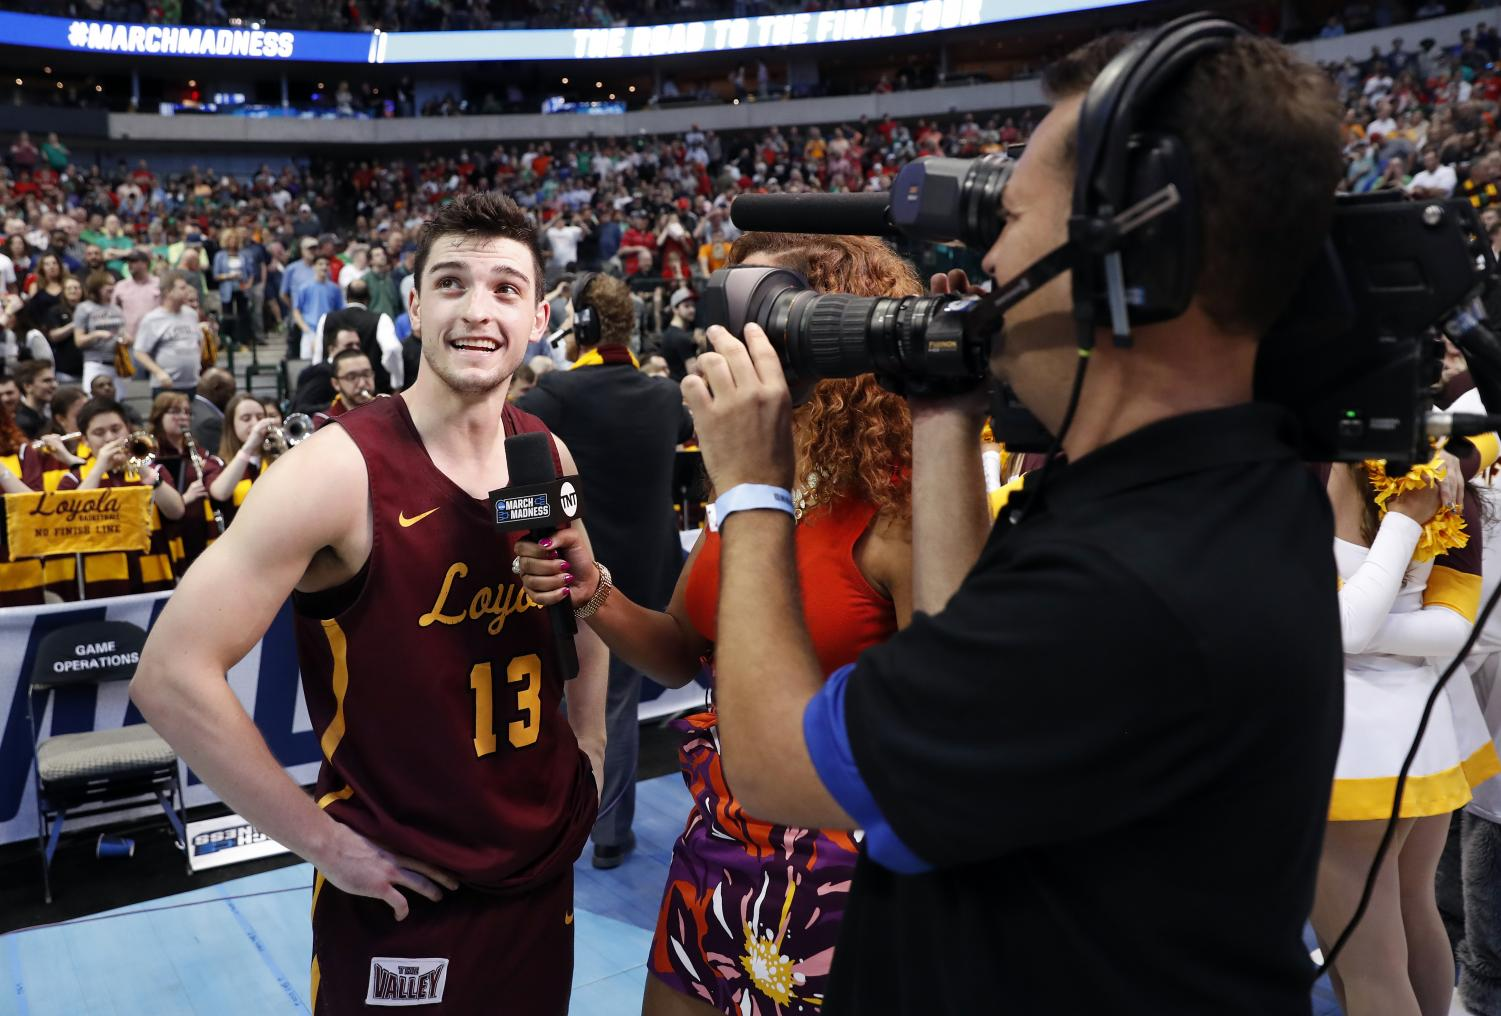 Custer talks to Rosalyn Gold-Anwude of TNT after his game-winner against Tennessee in the second round.